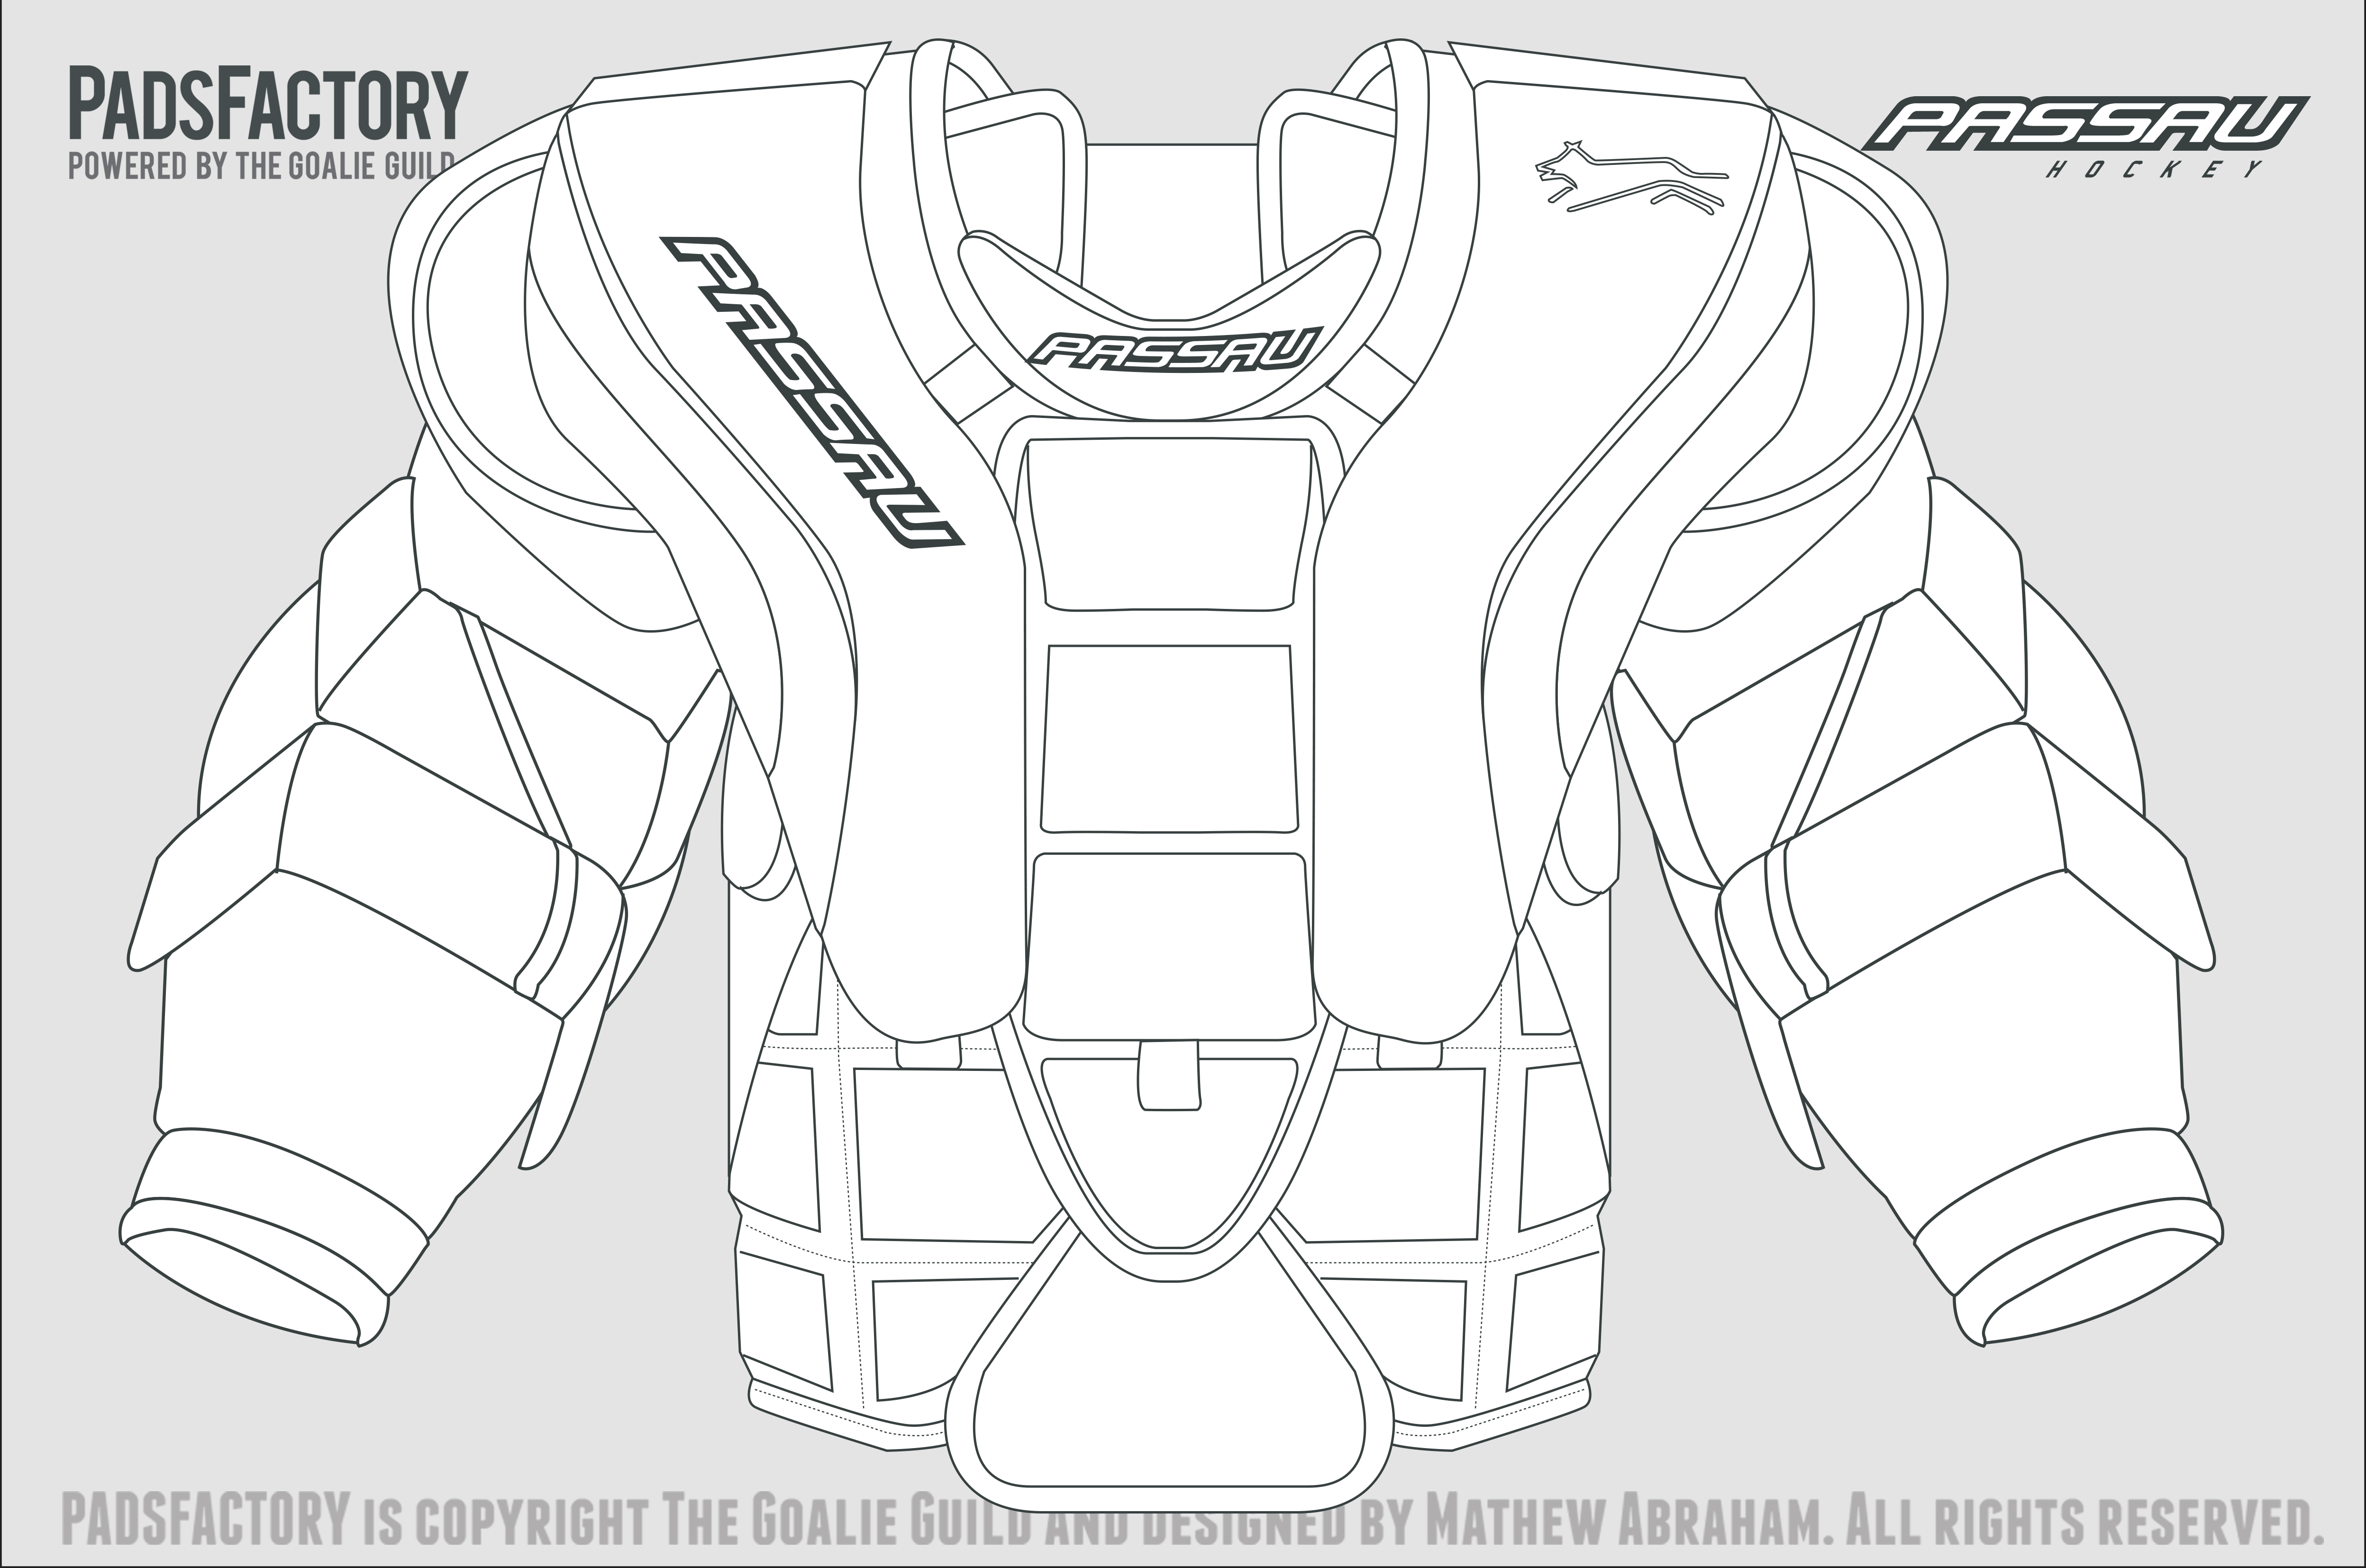 Bauer goalie mask template the image for Bauer goalie mask template